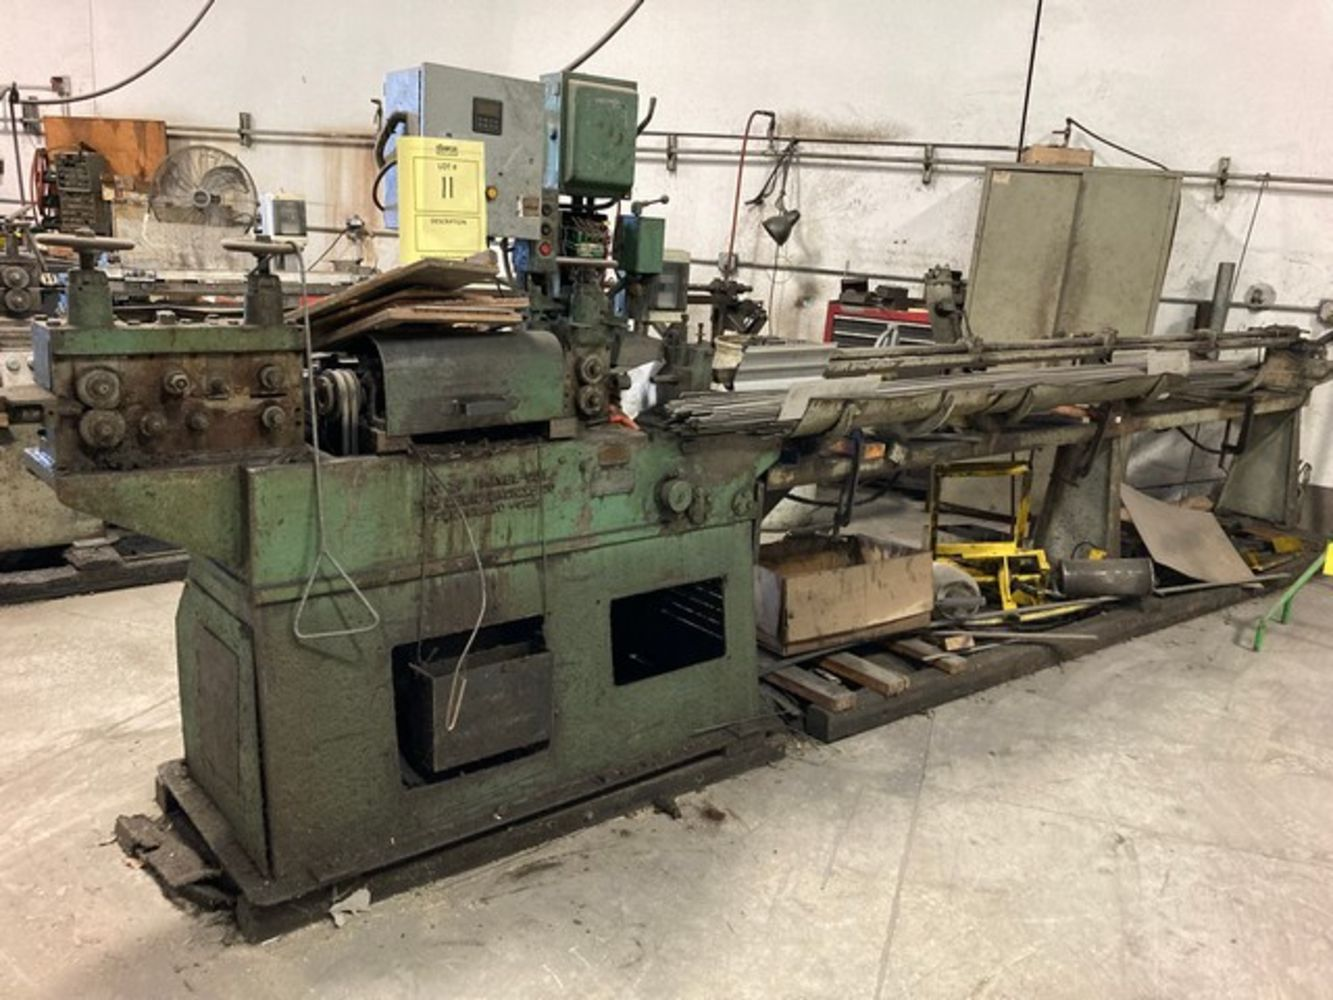 METAL MACHINERY & EQUIPMENT - ABSOLUTE AUCTION